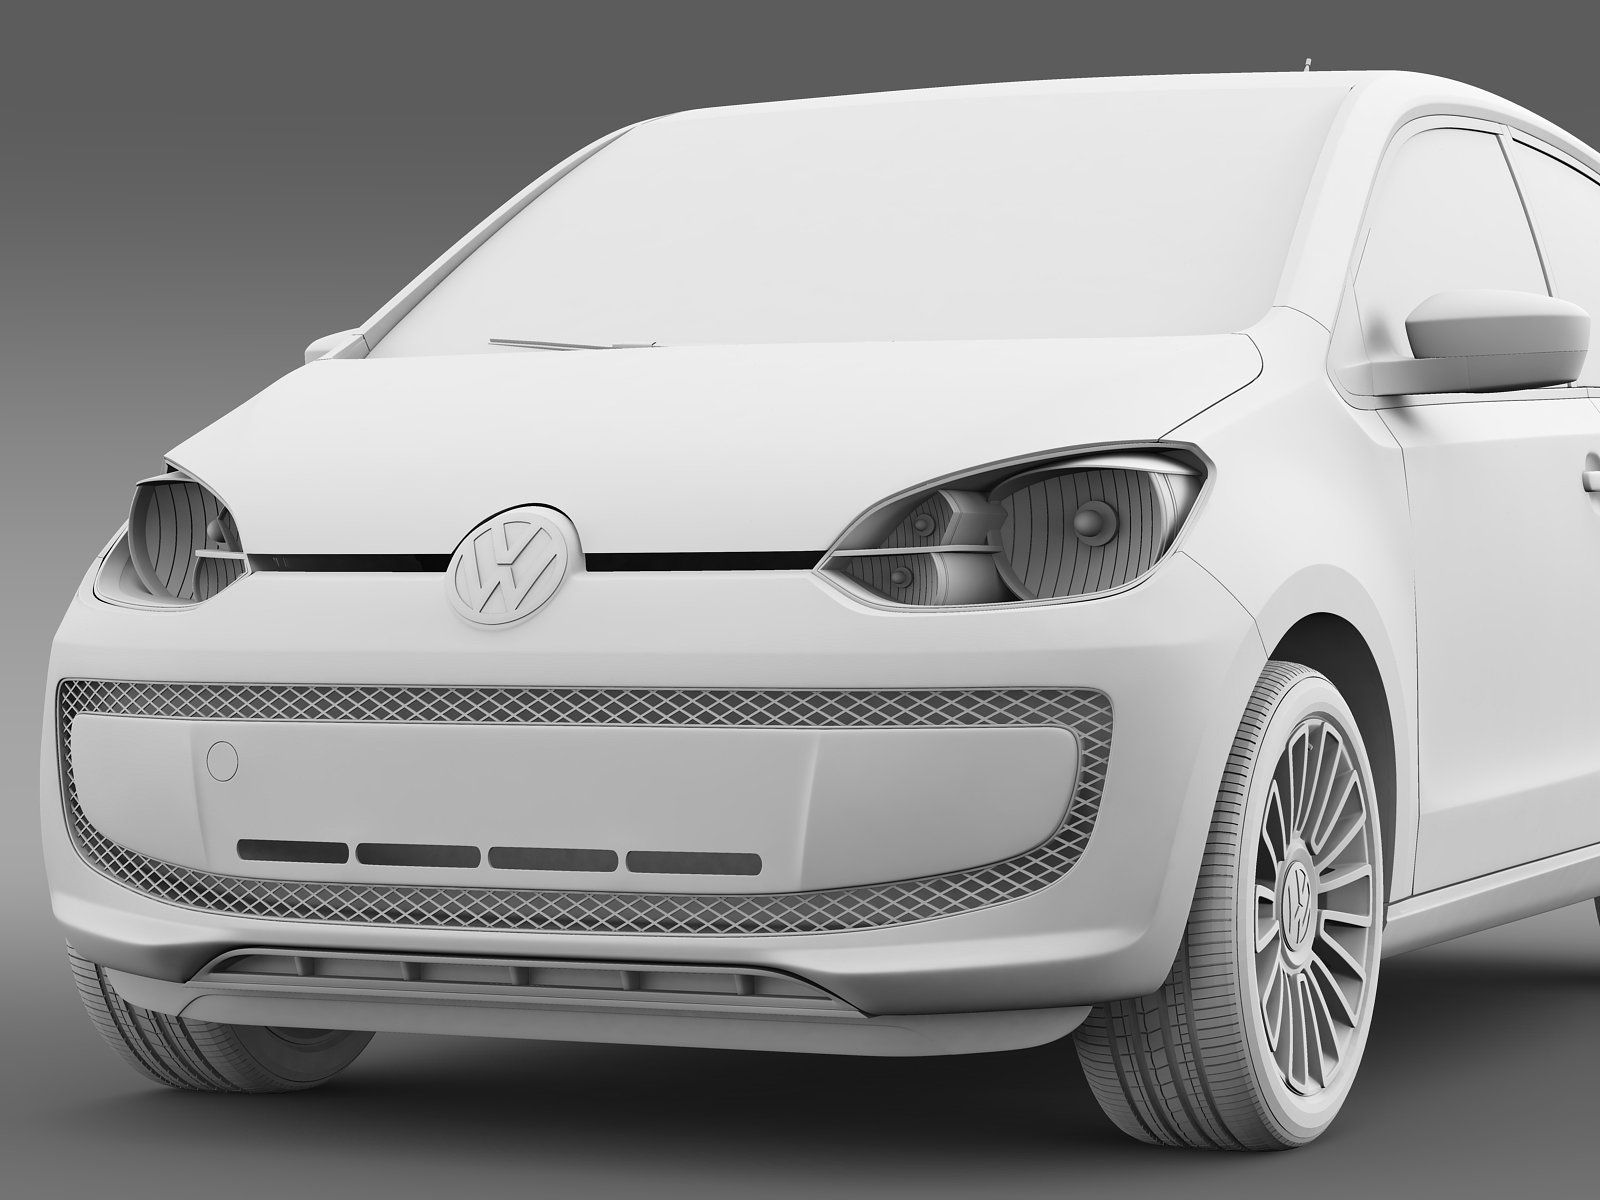 Vw High Up 5 Door 2014 Vw Up Branding Design Inspiration